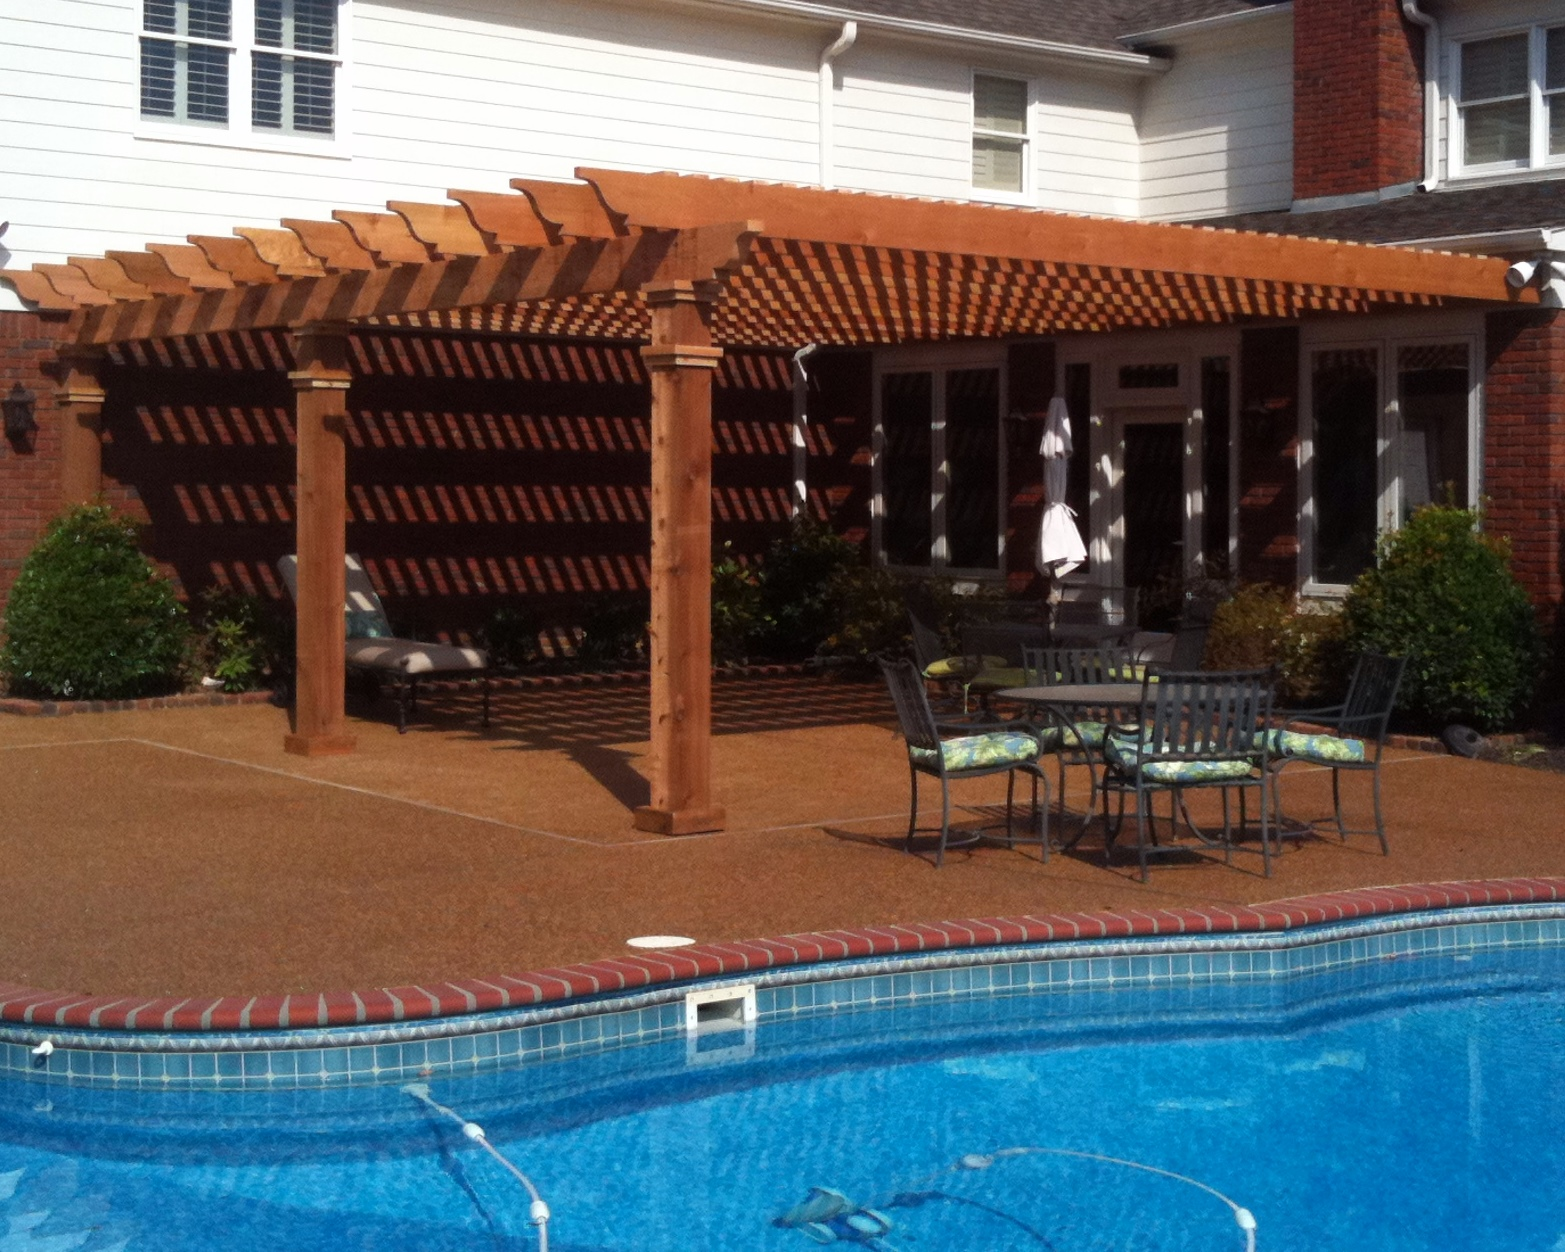 Poolside Open Top Pergola   This poolside patio was in need of some sun protection. They chose the open top design because it gave the area a nice cabana vibe, while still allowing guests to enjoy sunny days.